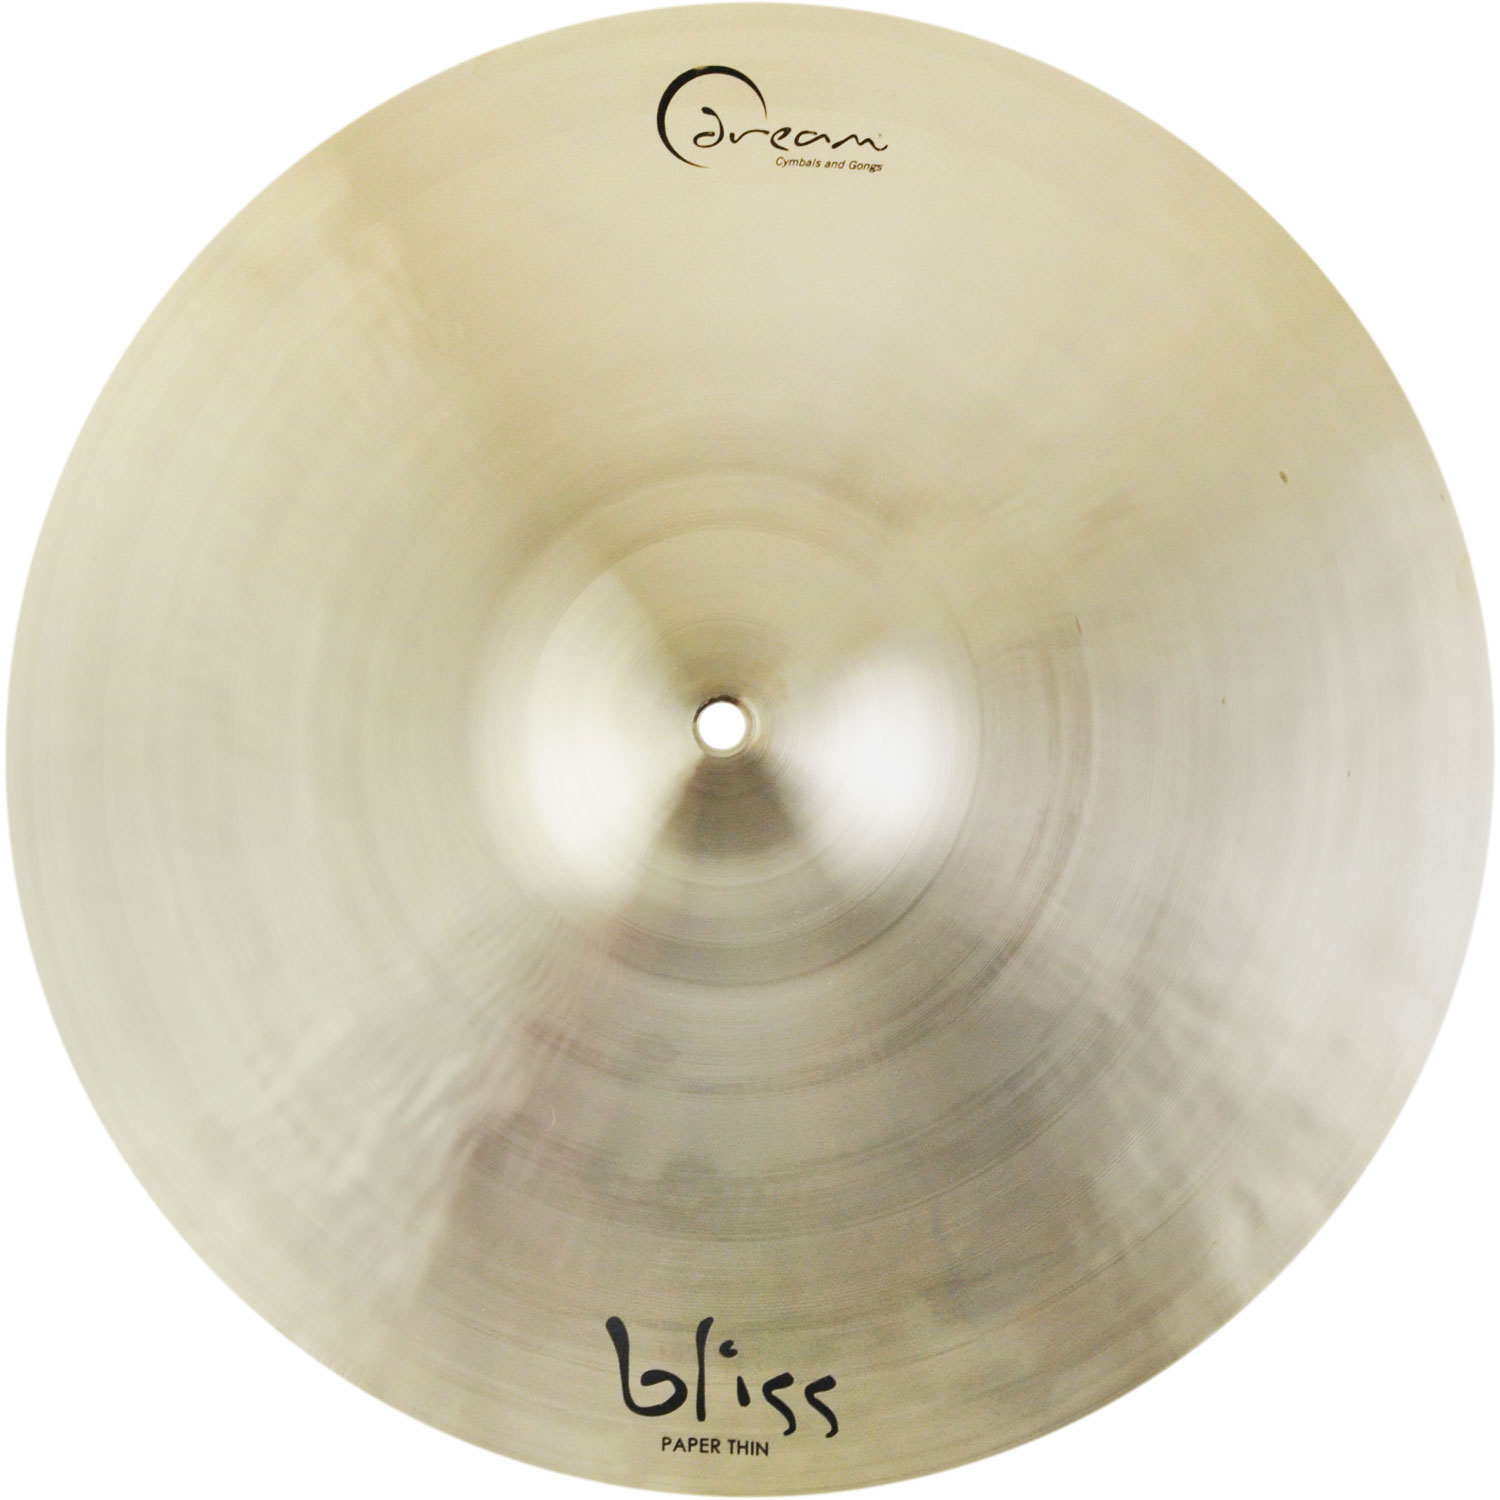 "Dream 20"" Bliss Paper Thin Crash Cymbal"